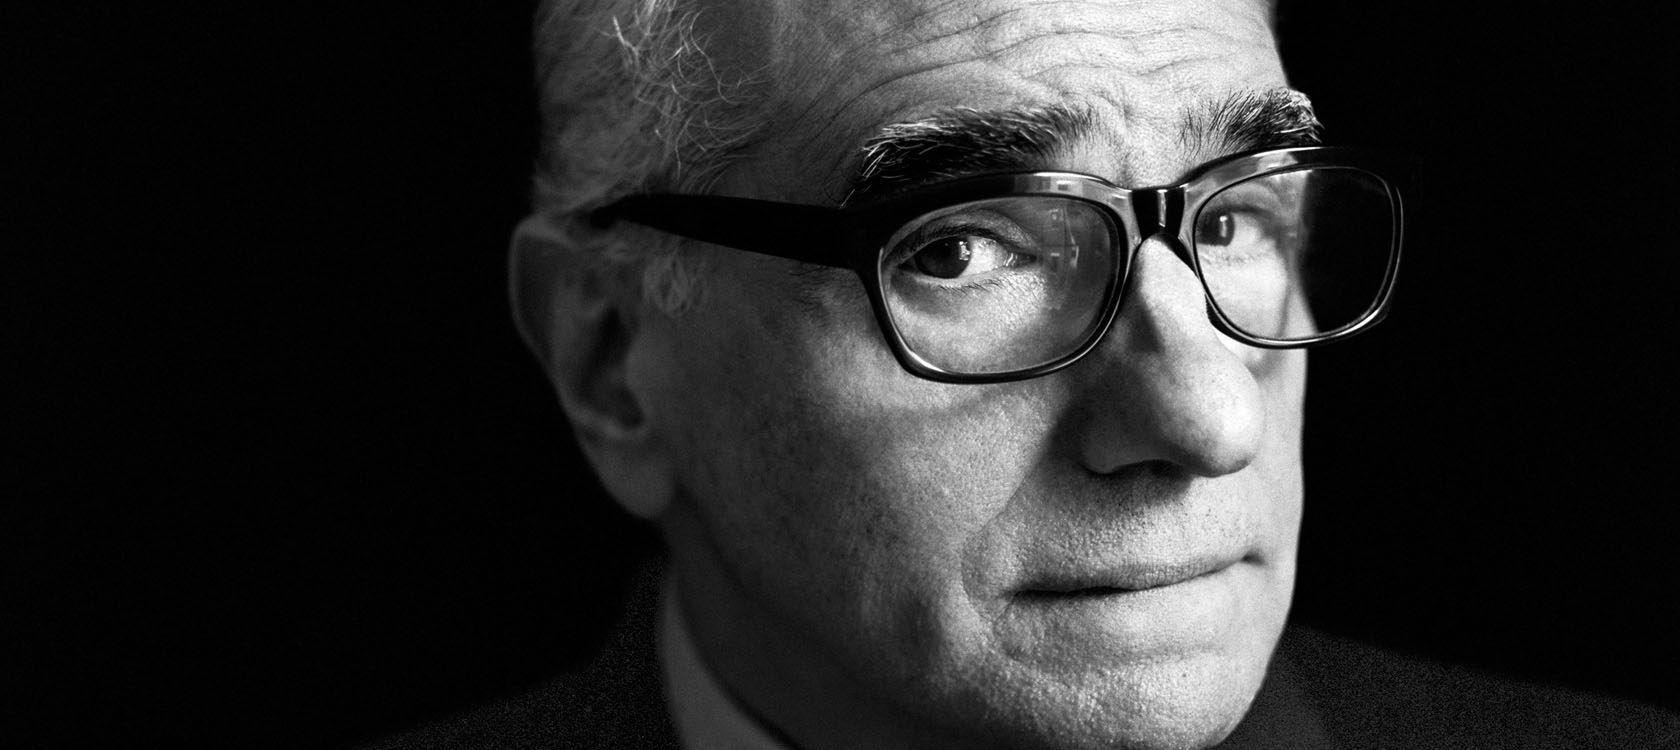 Martin-Scorsese-New-York-2012-photo-detail-Brigitte-Lacombe-Brigitte-Lacombe-New-York